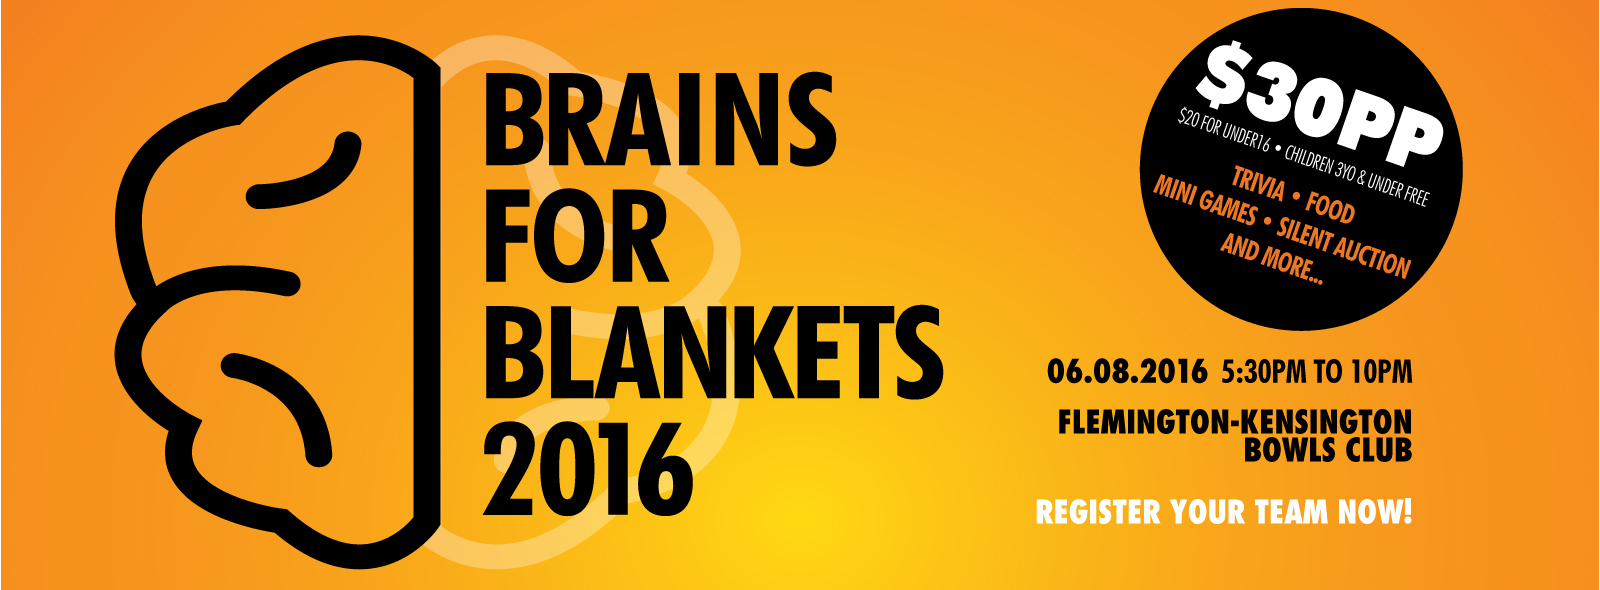 Brains-for-blankets-website-2